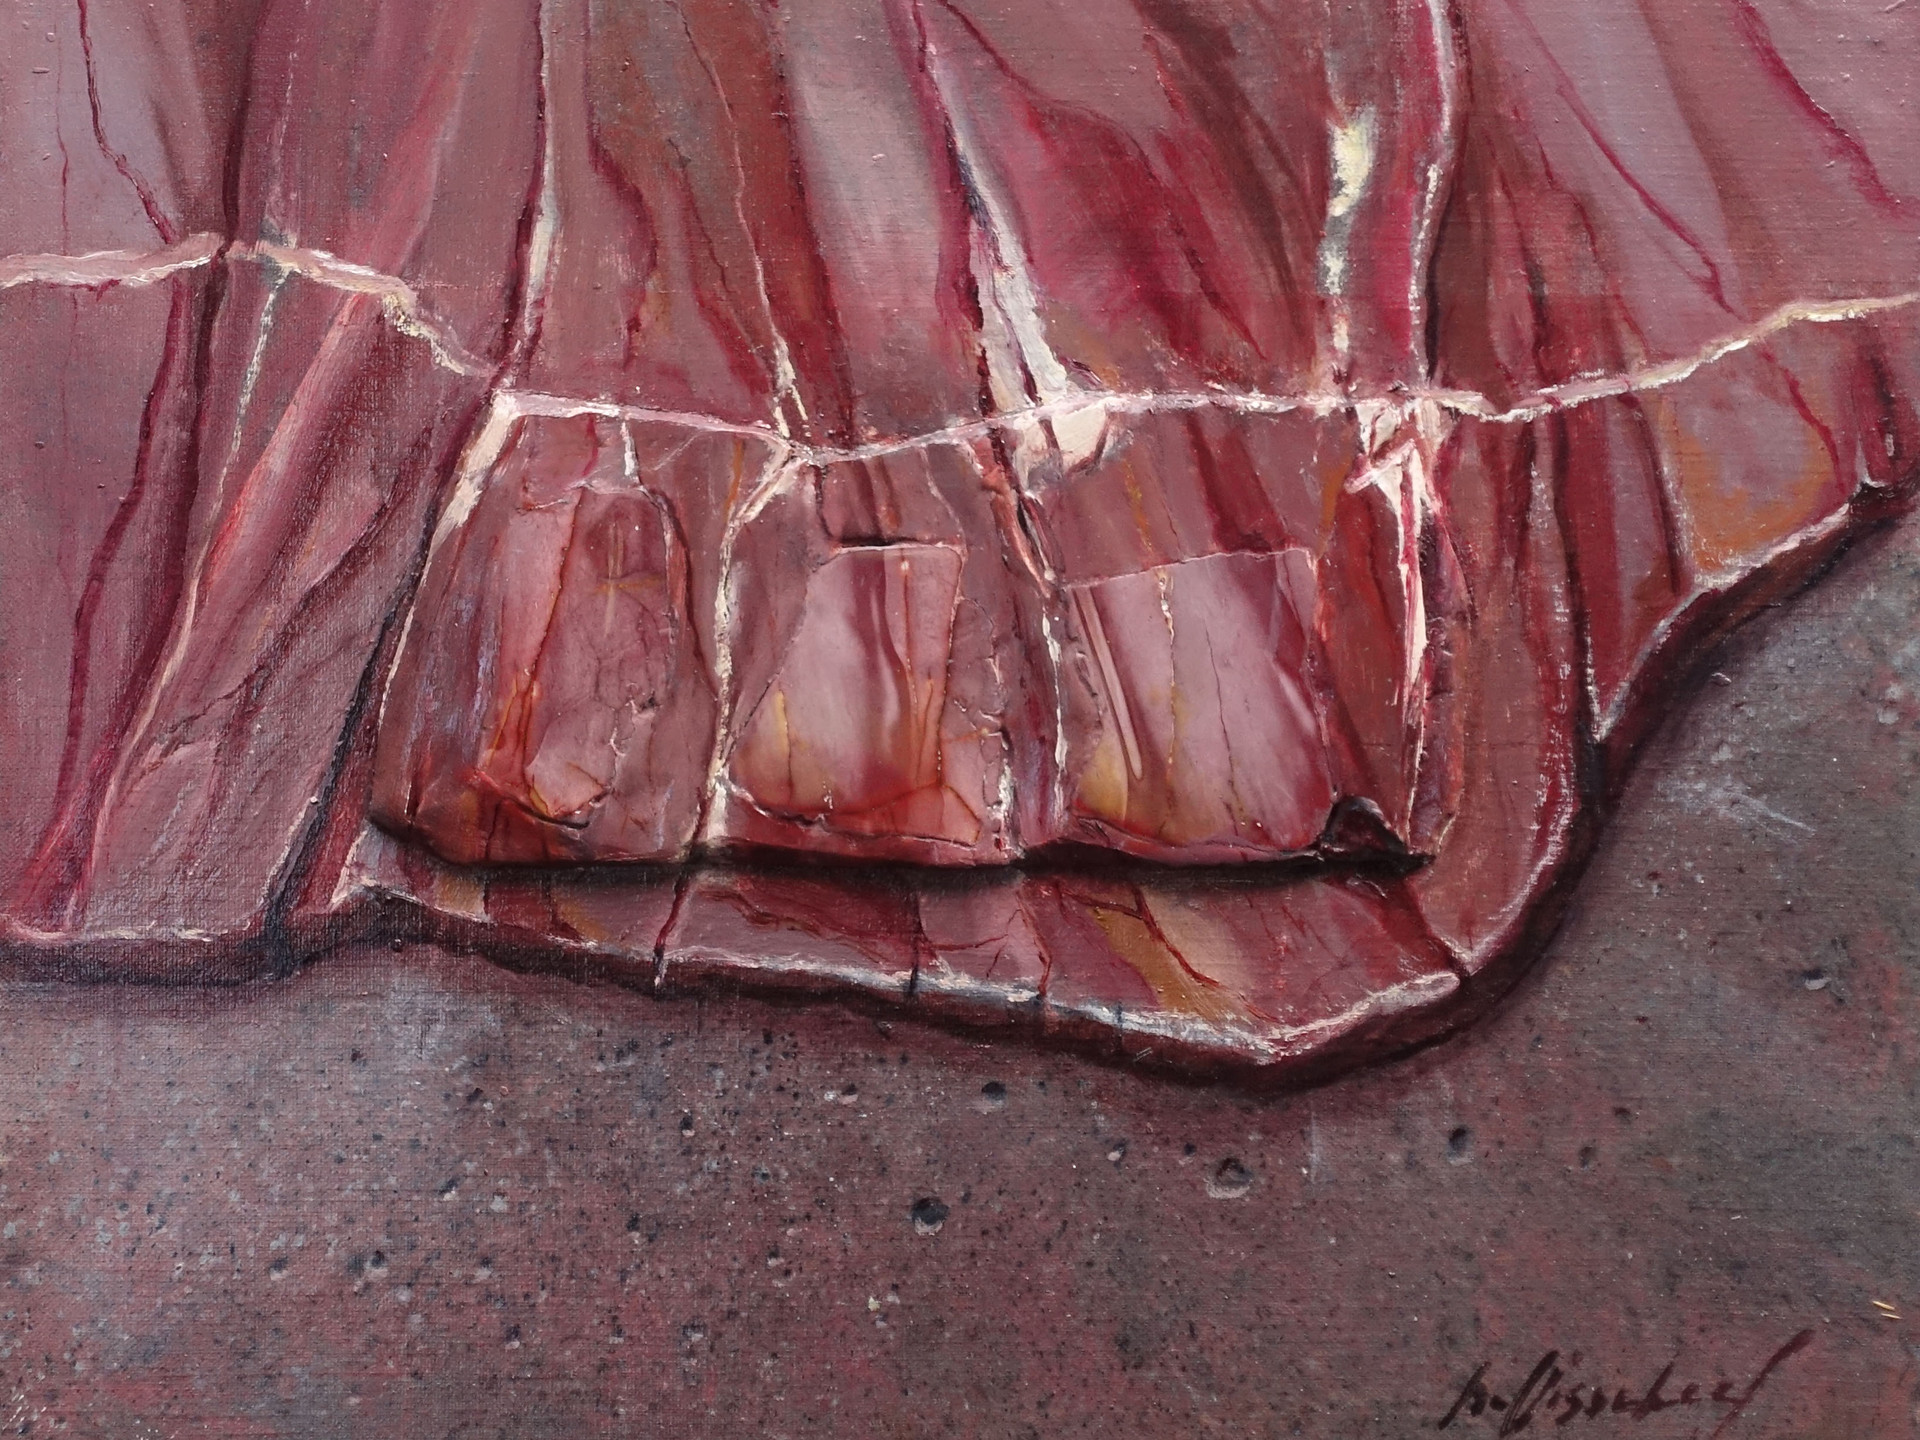 MOOKAIET 49x39 cm (mineral - oilpainting - mixed media)